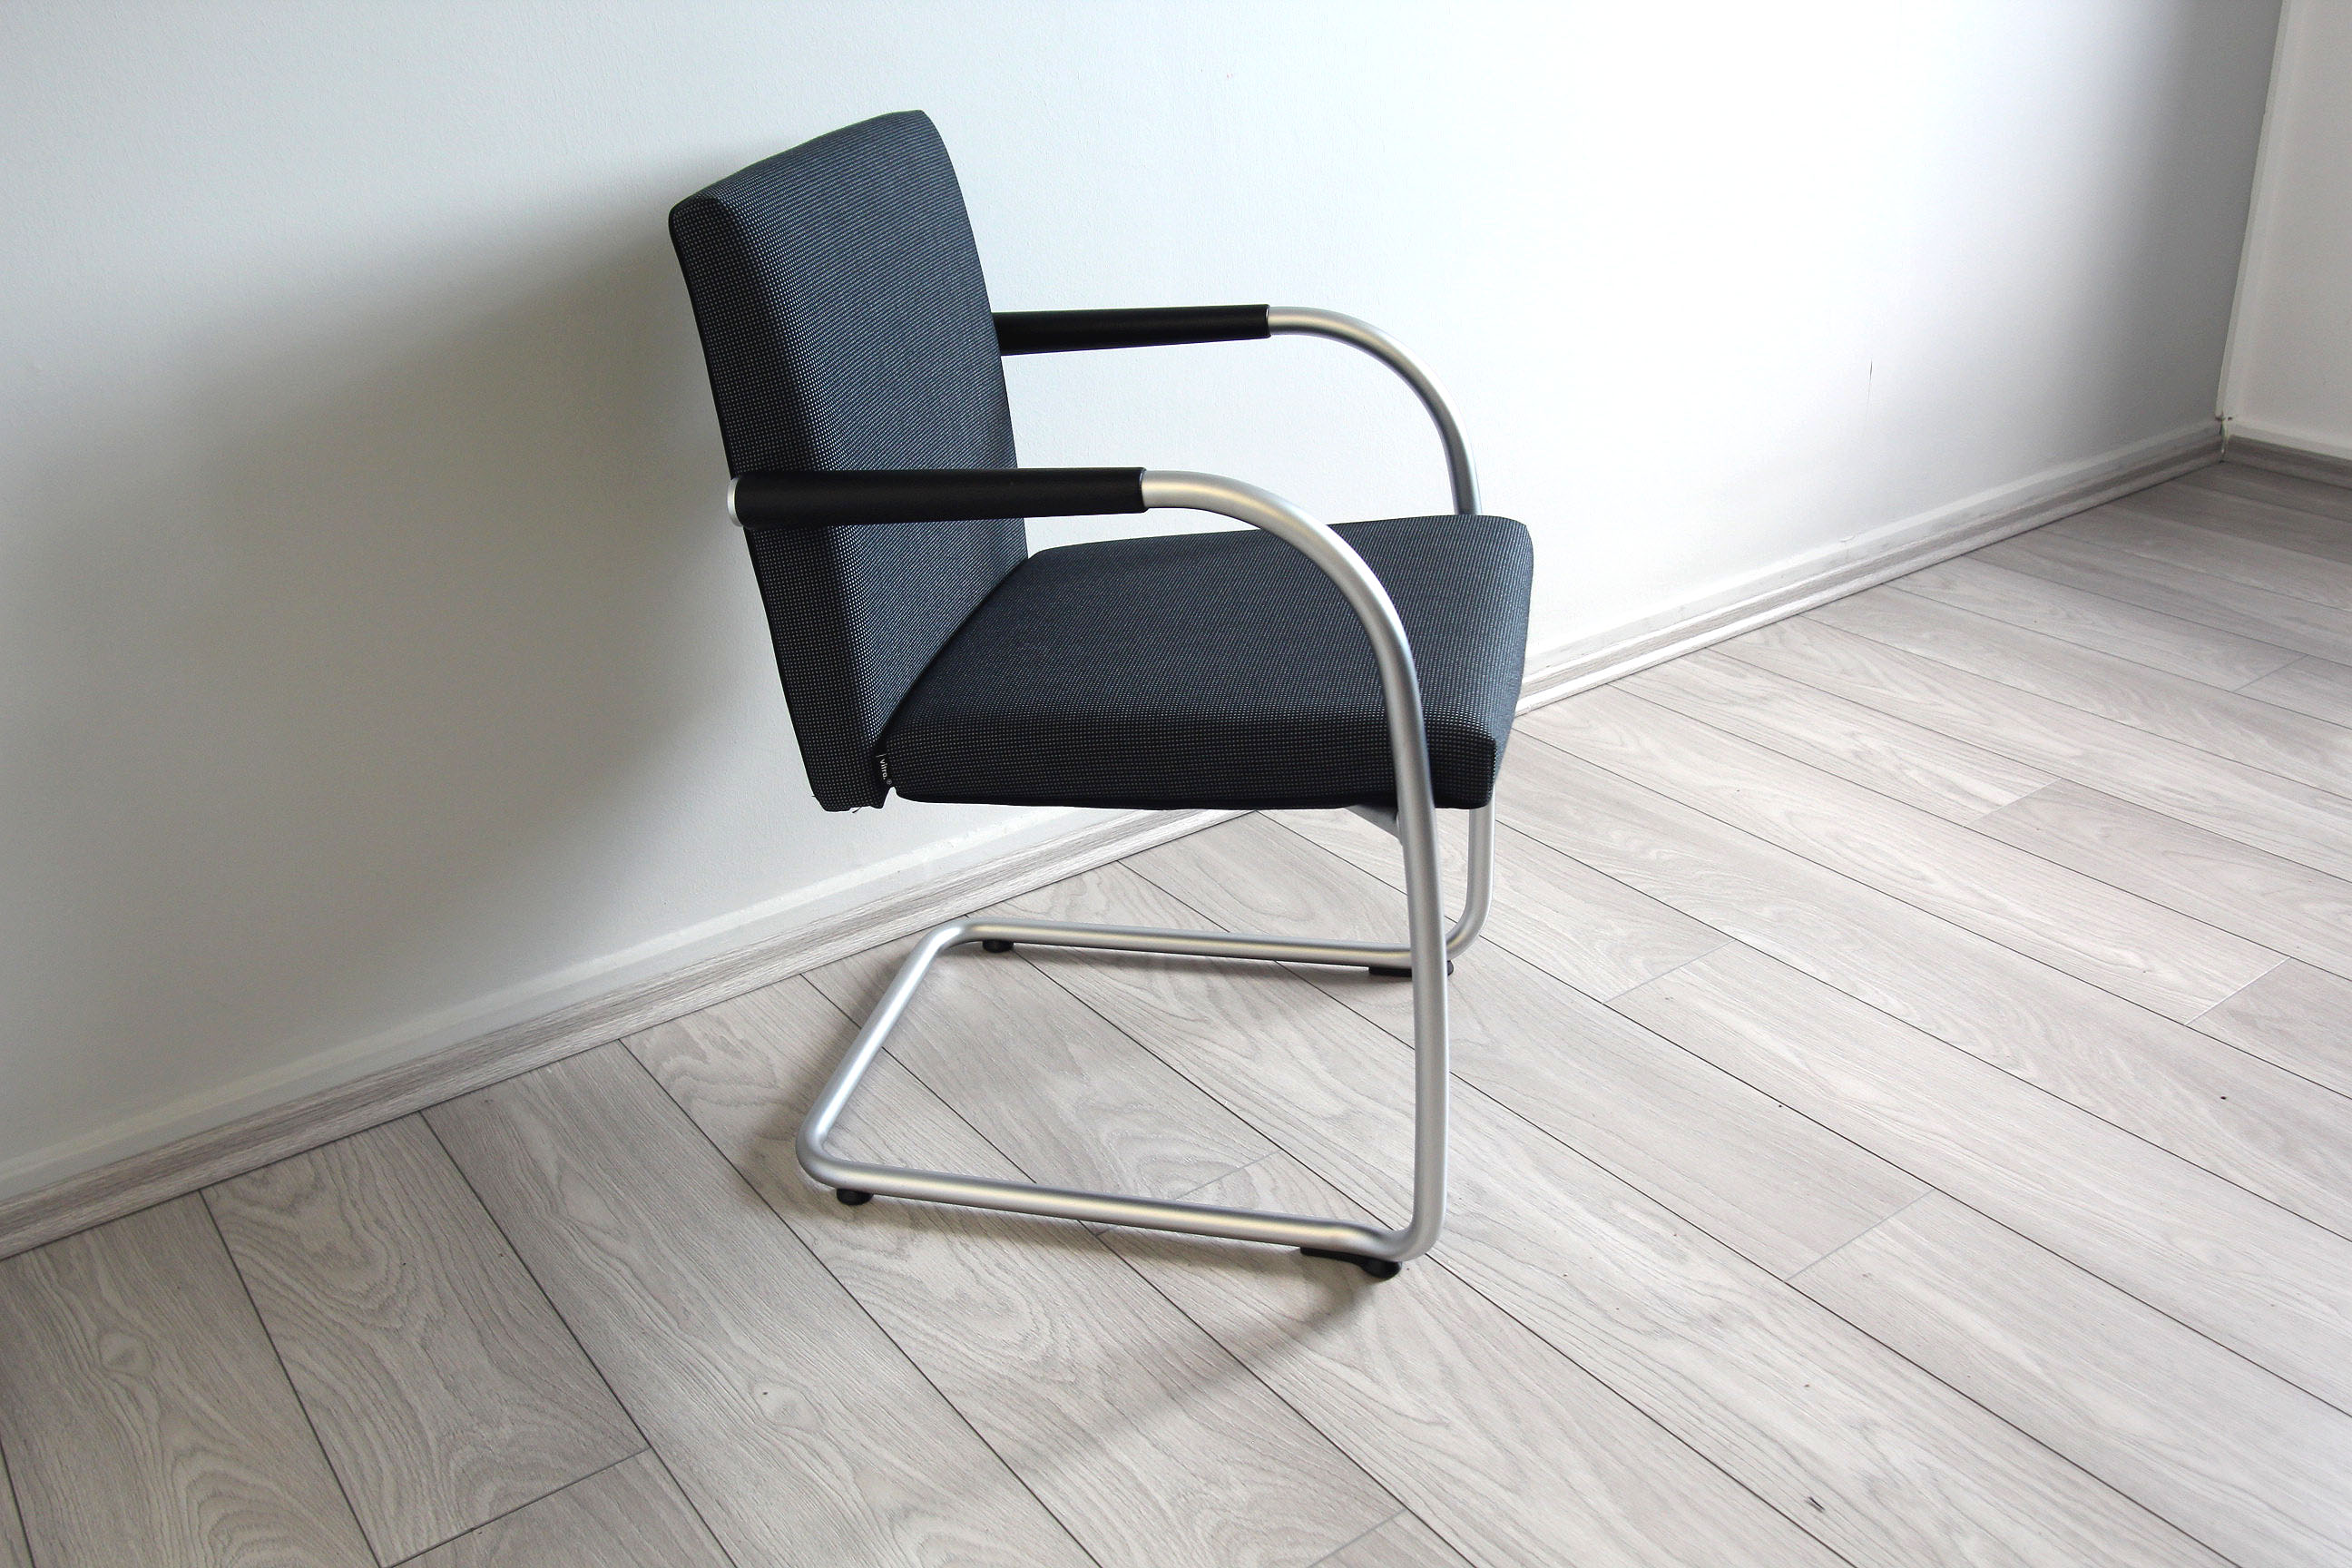 Vitra Mbel Gebraucht Free Eames Es Lobby Chair With Vitra Mbel